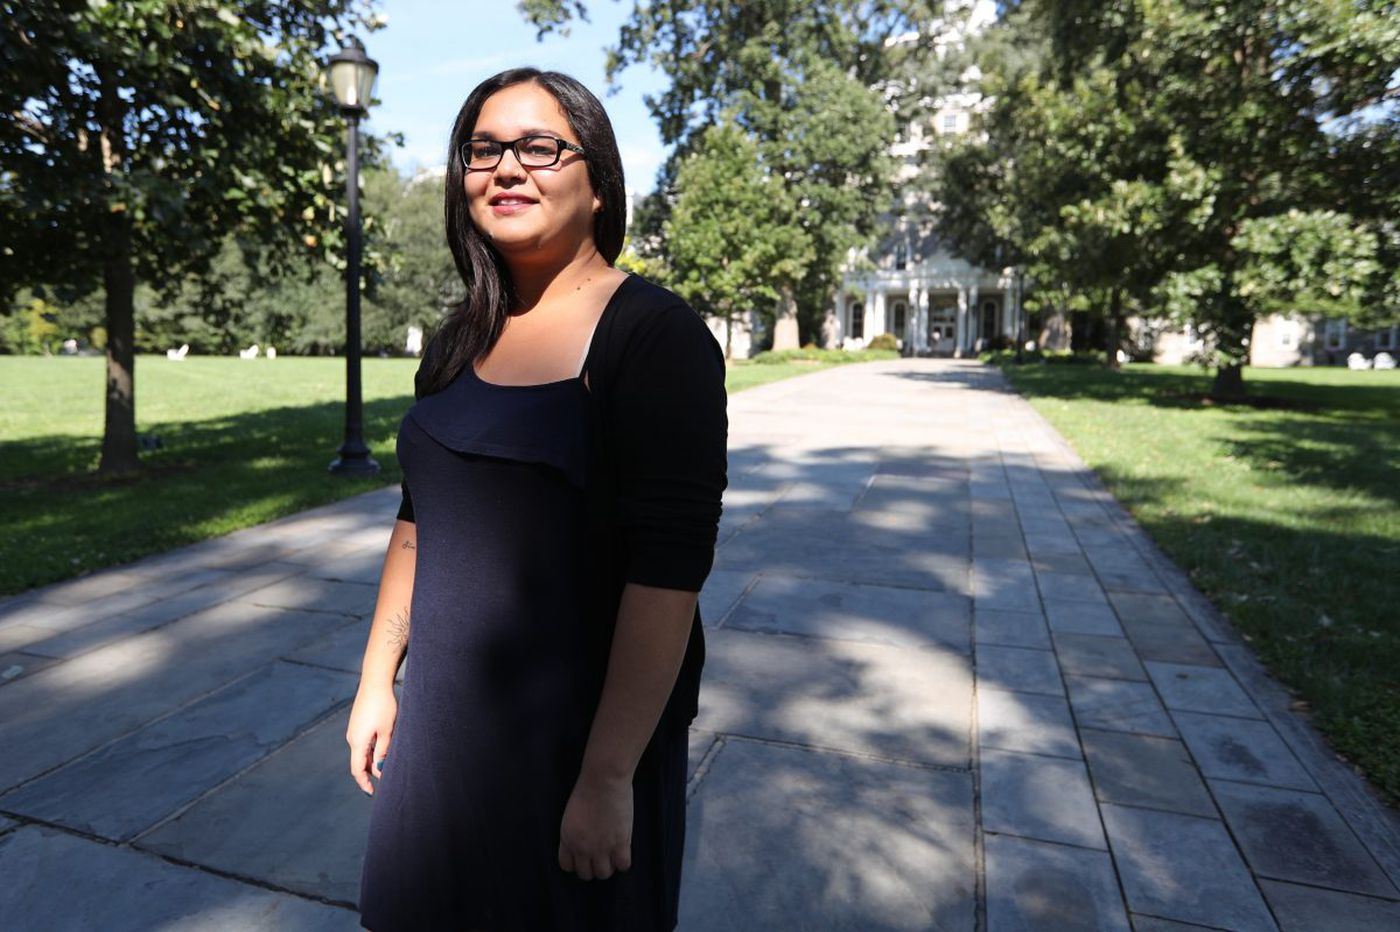 From Mexico to Swarthmore, a dream now in danger